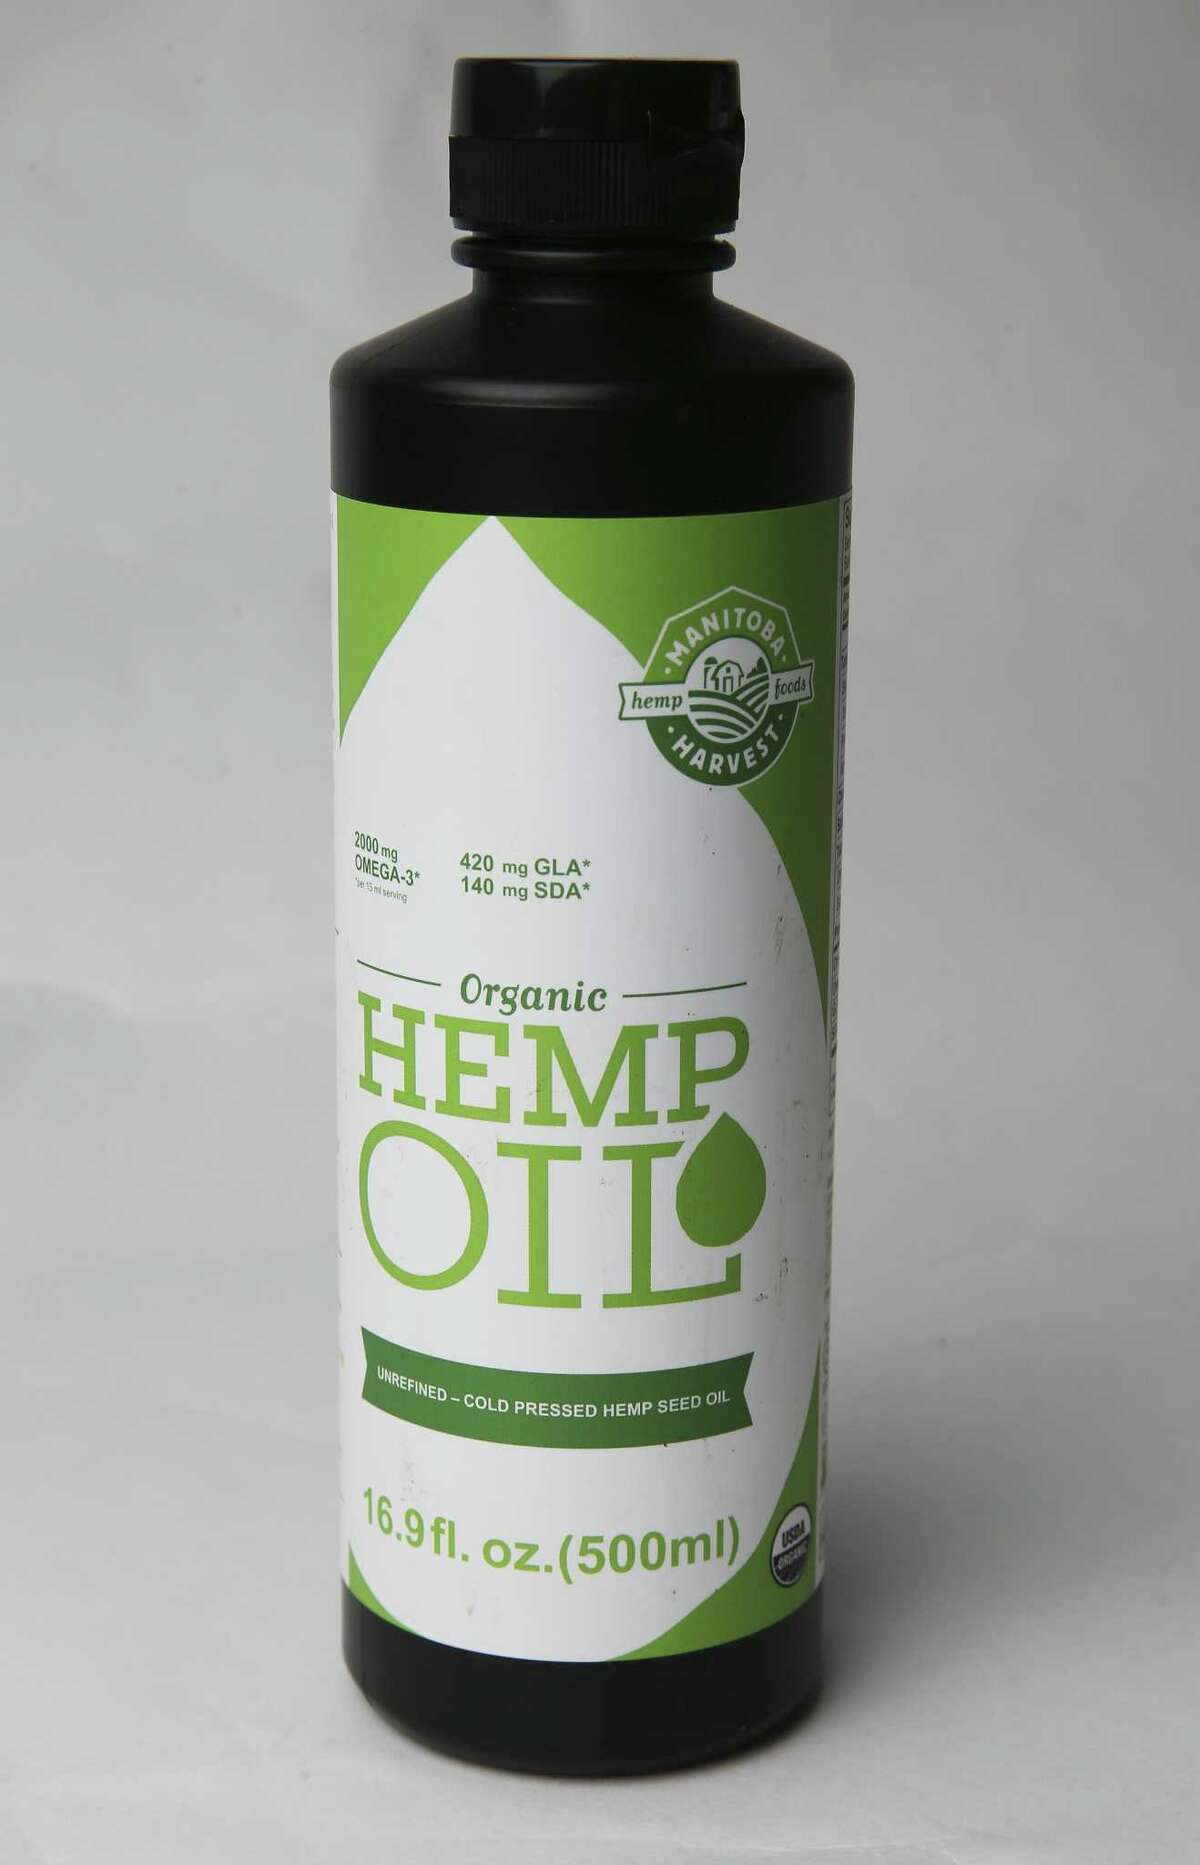 Hemp products on August 21, 2018.